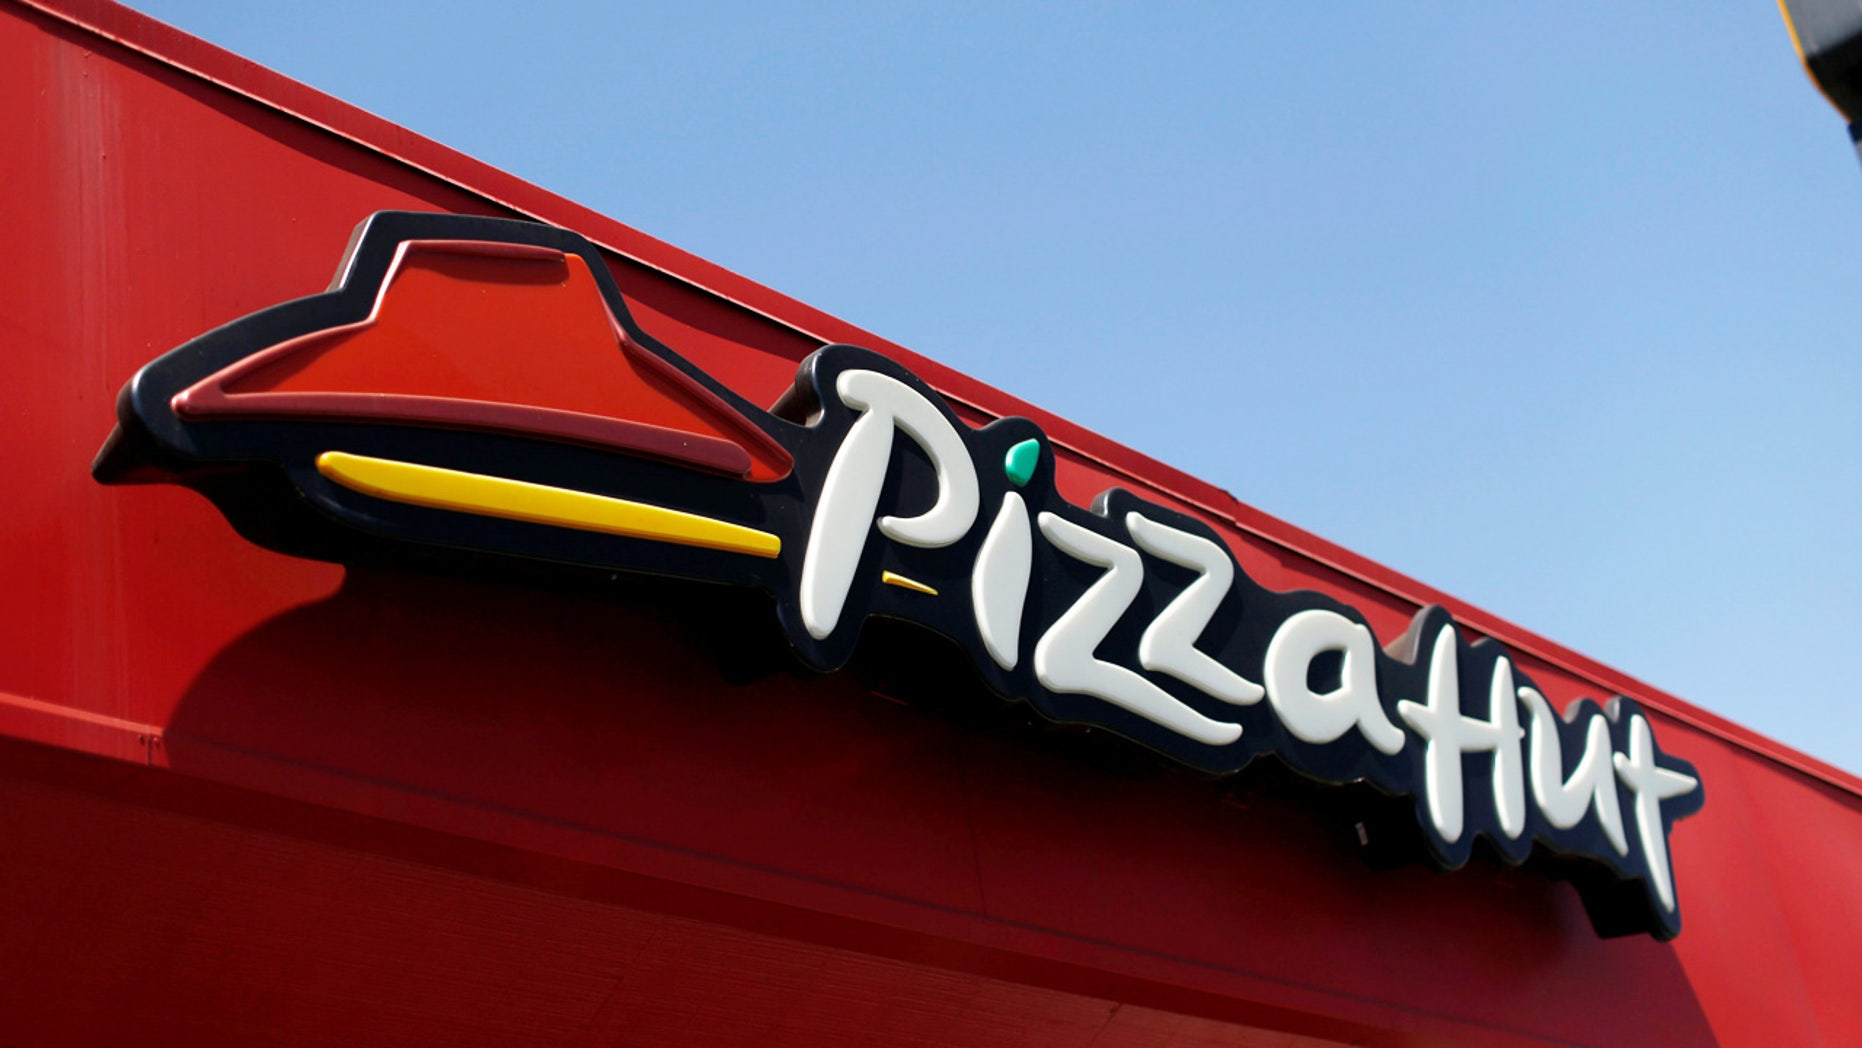 The sign at a Pizza Hut location, which is owned by Yum Brands Inc, is pictured ahead of their company results in Pasadena, California U.S., July 11, 2016. REUTERS/Mario Anzuoni - RTSHGTN